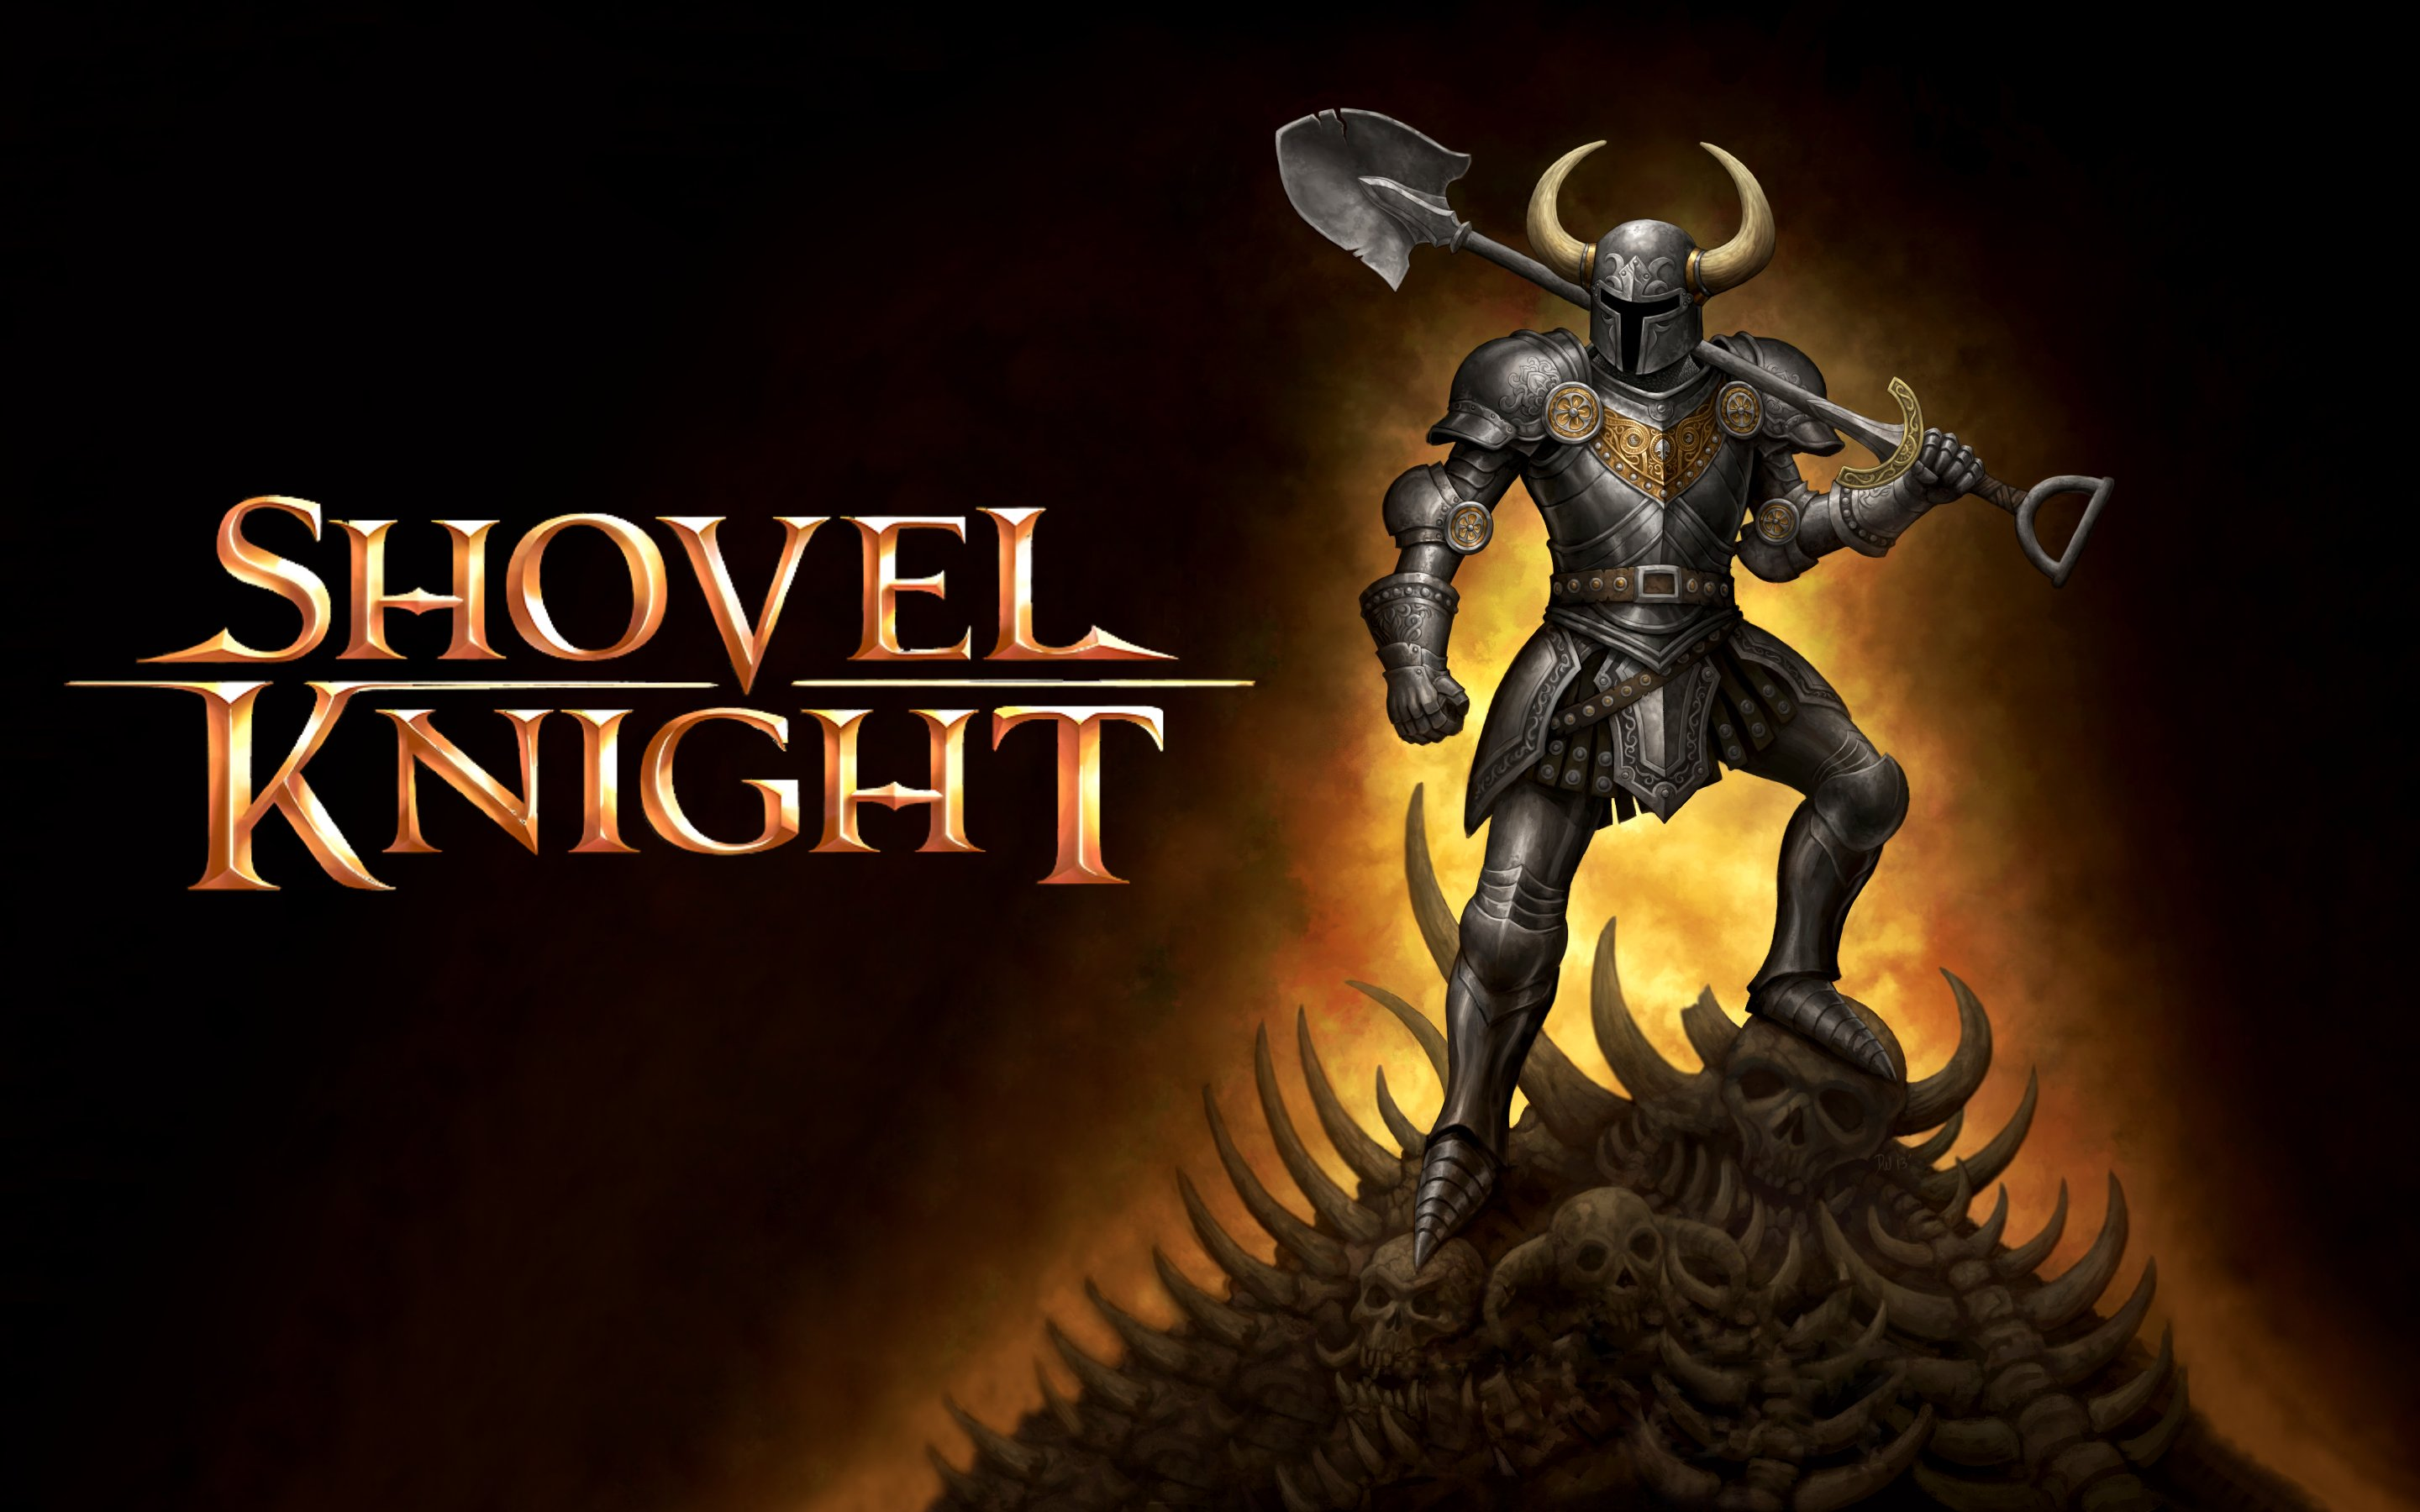 SHOVEL KNIGHT Action Adventure Fighting Warrior Scrolling